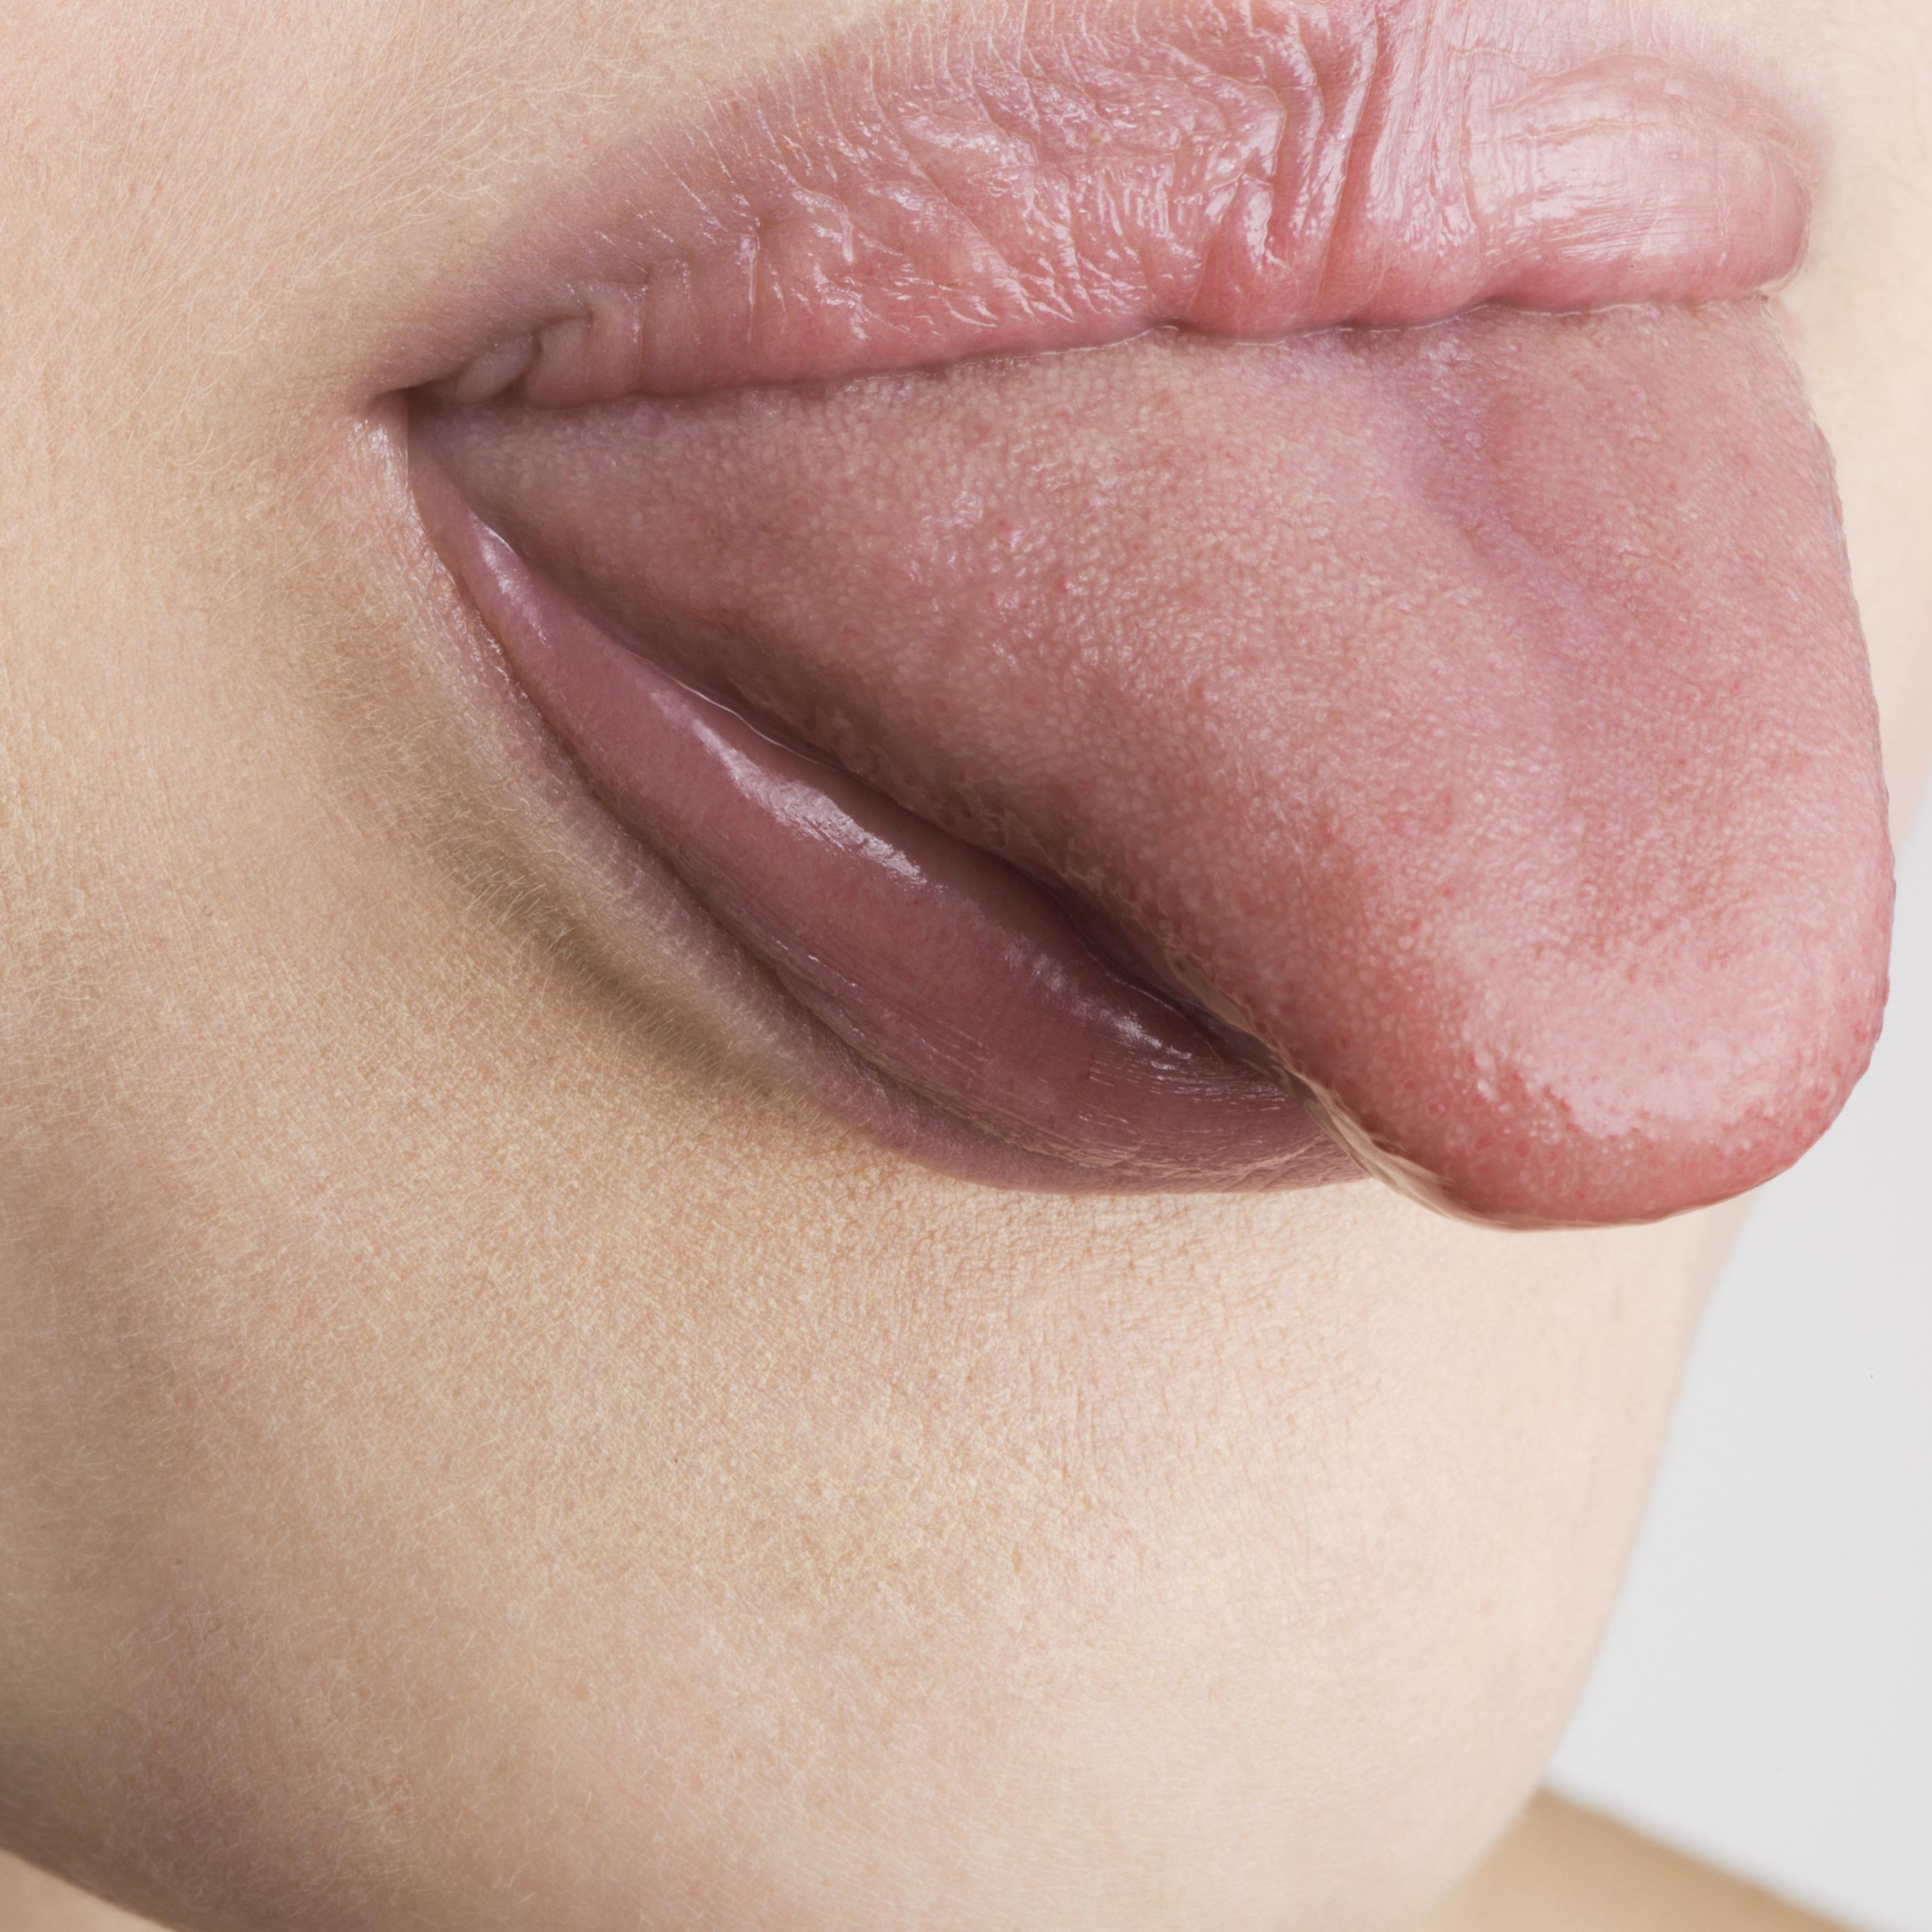 Causes of a Swollen Tongue and Typical Remedies